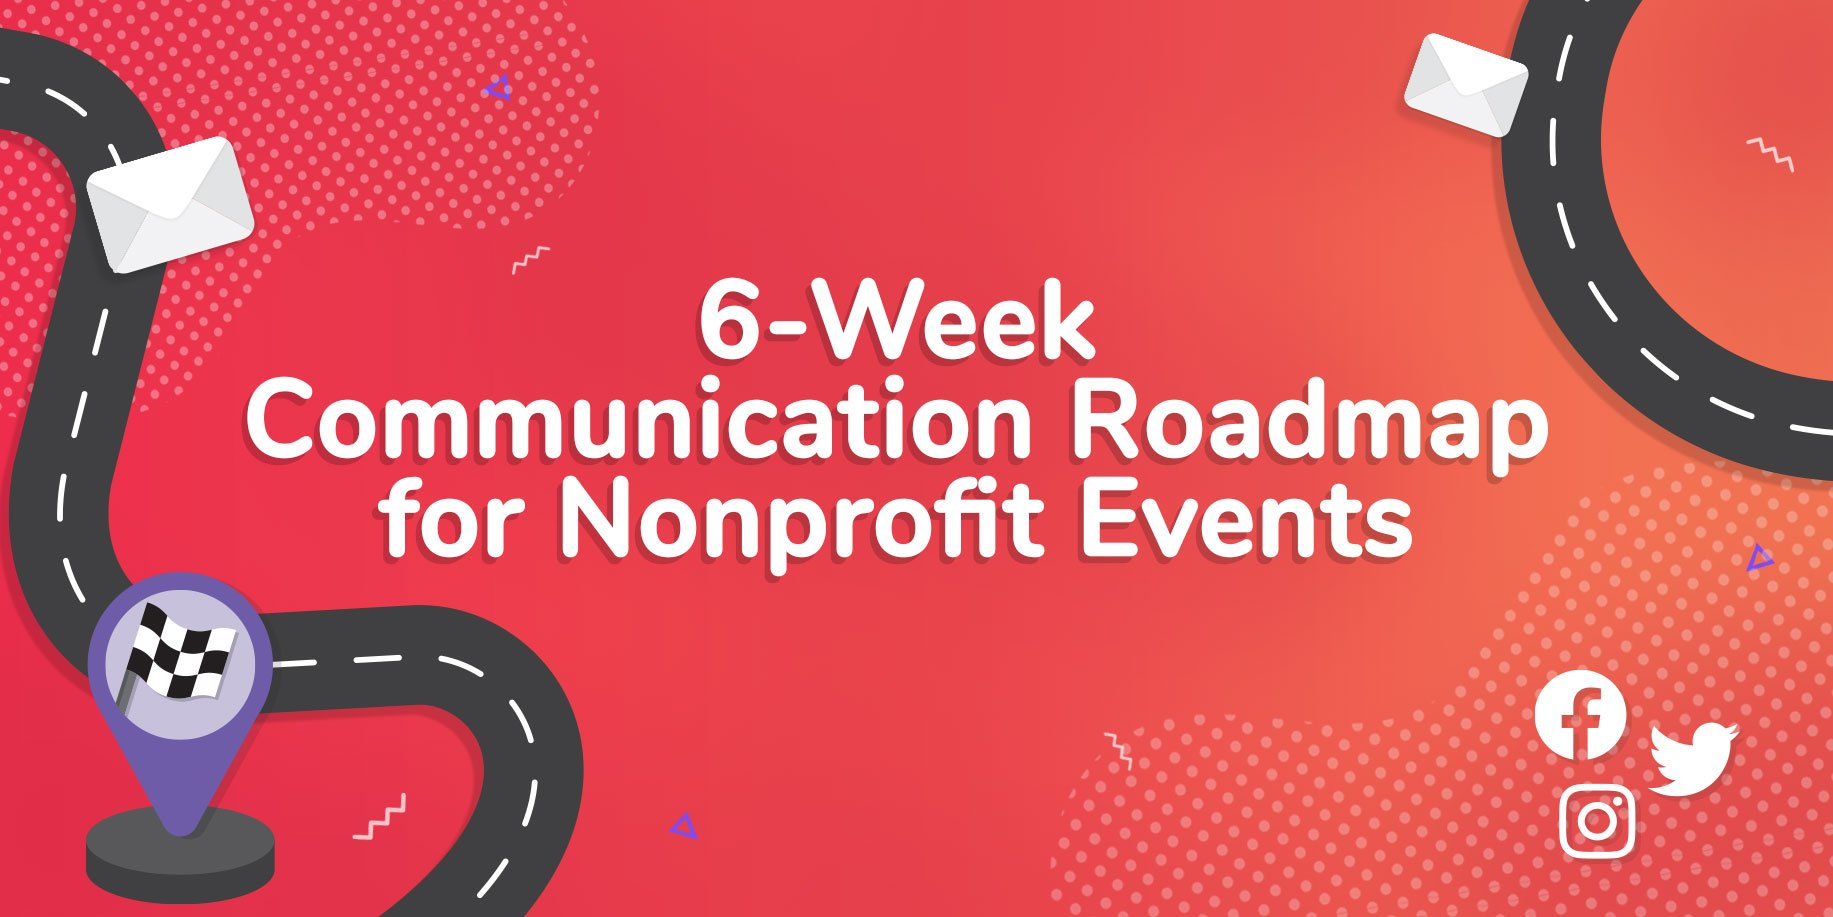 6 Week Communication Roadmap for Nonprofit Events